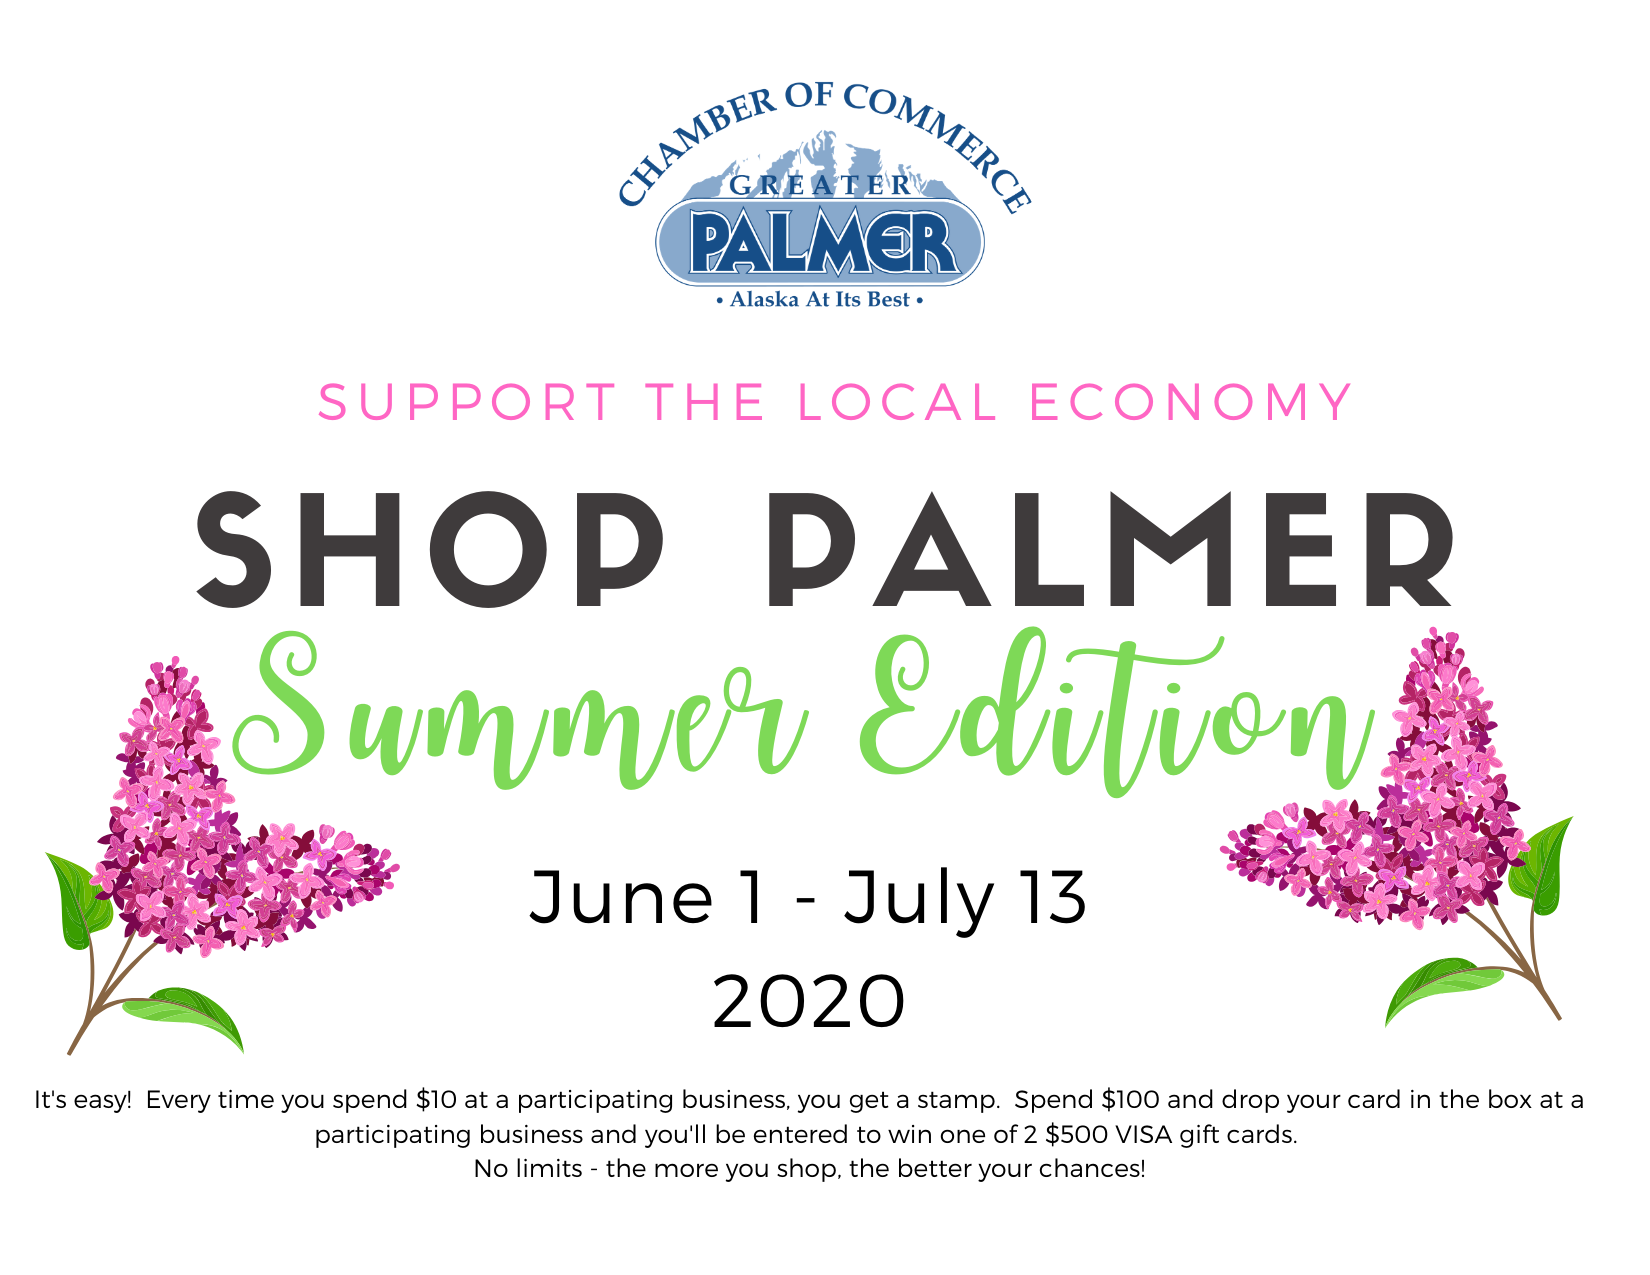 Shop Palmer Summer Edition